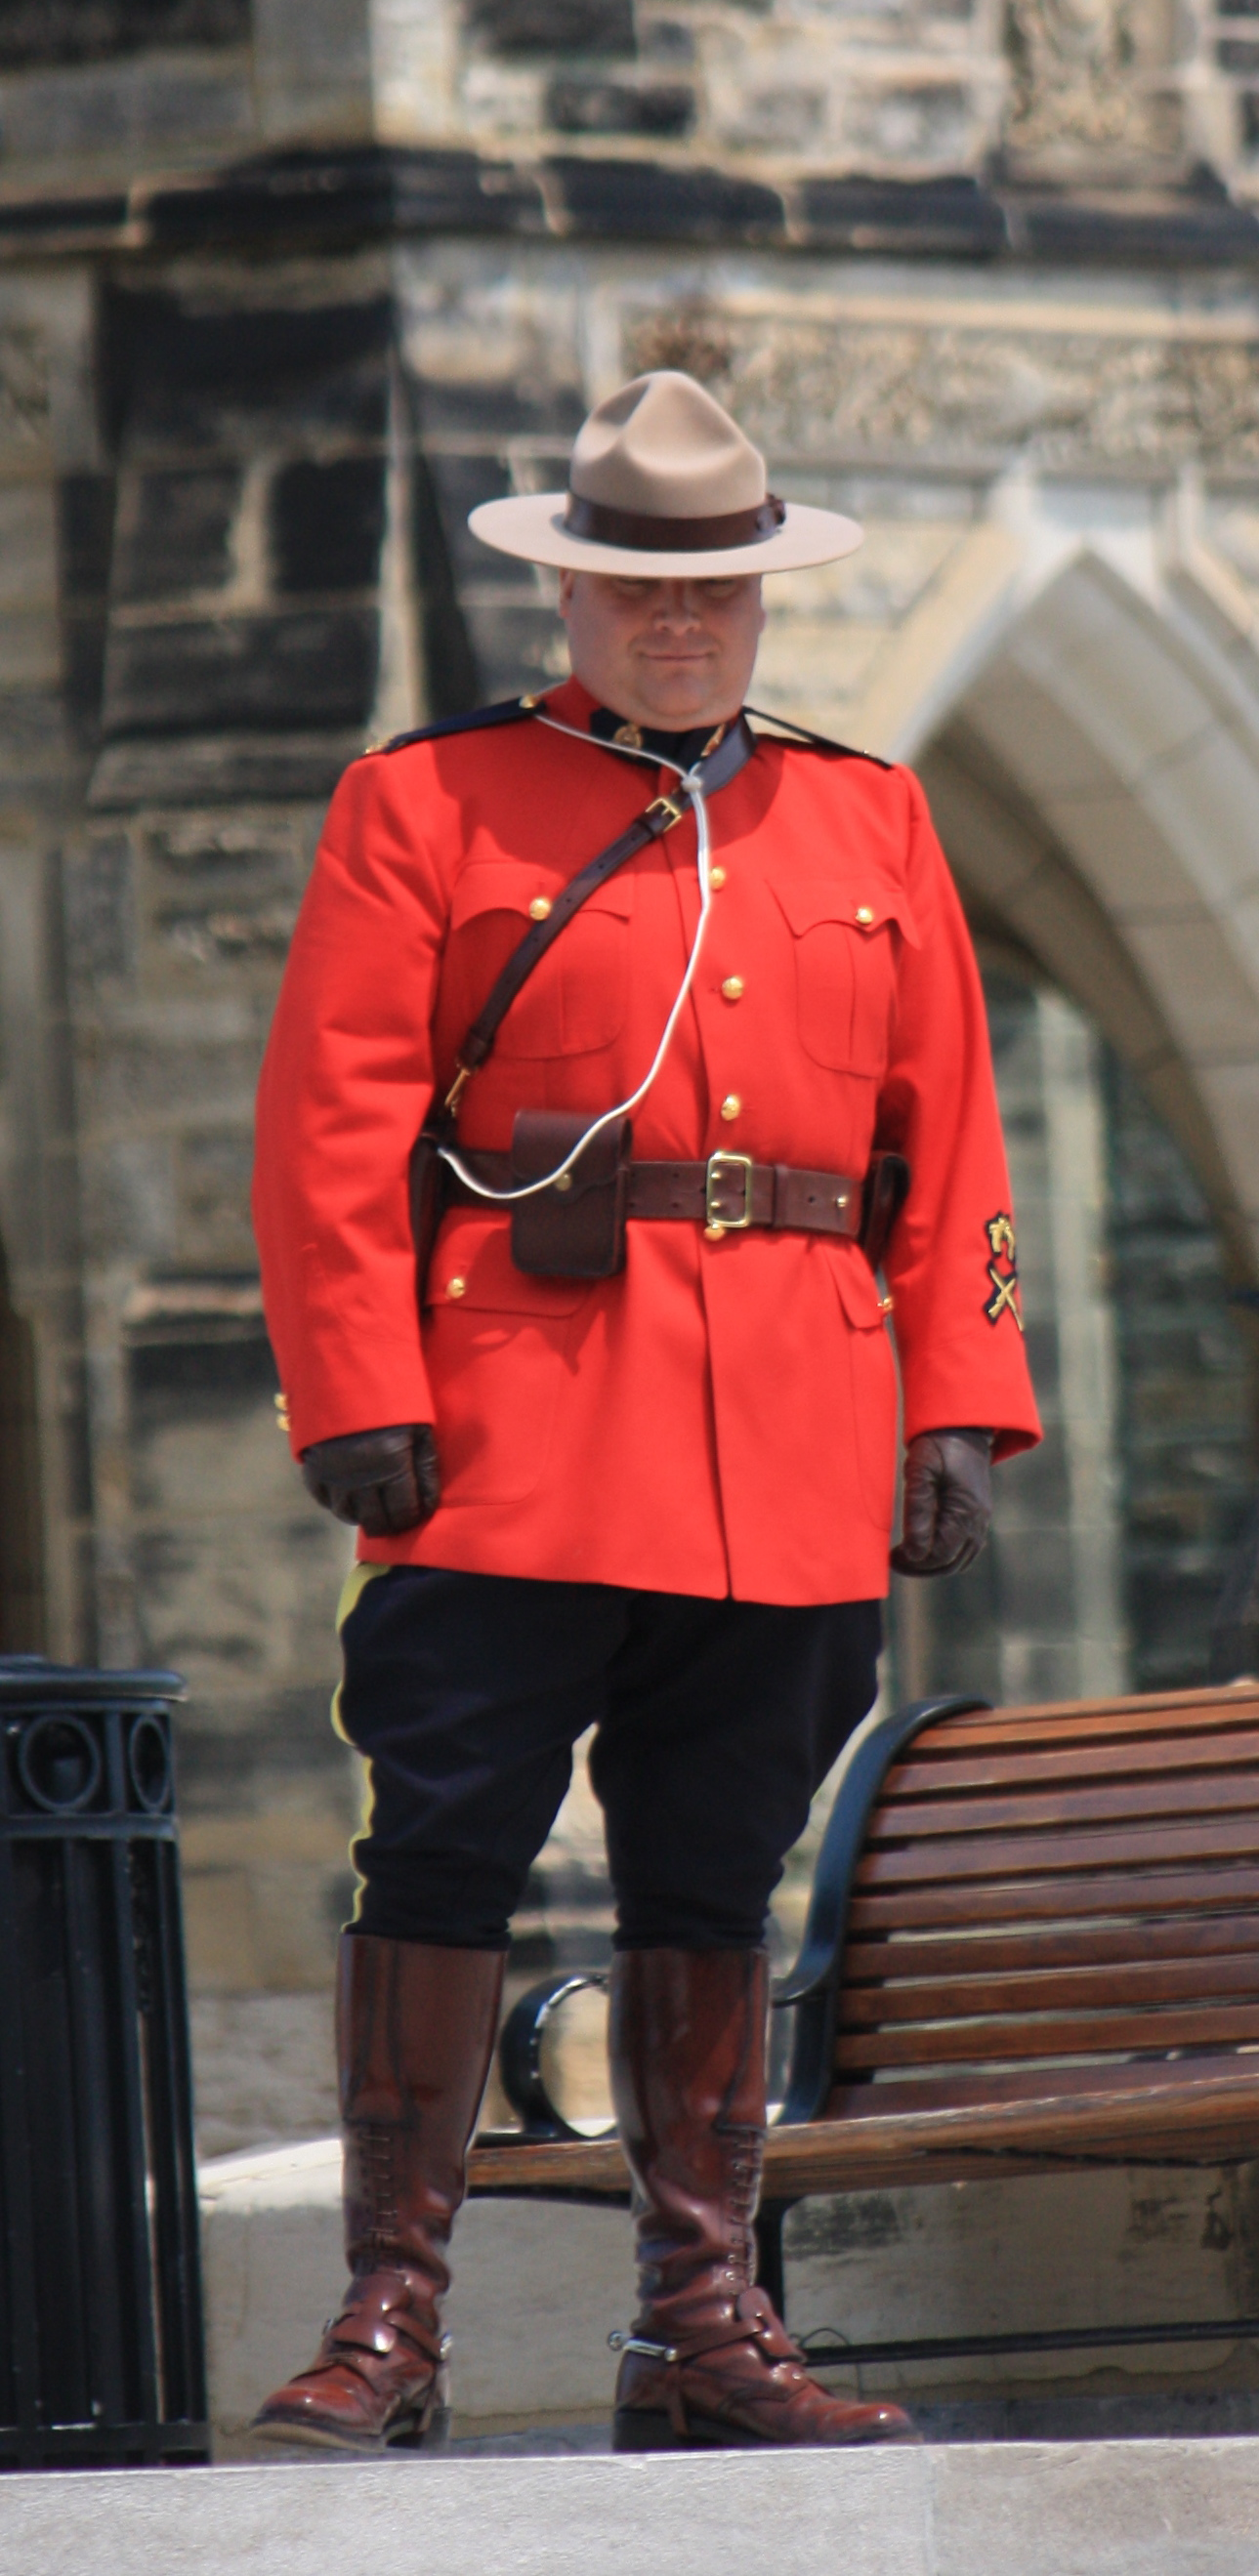 http://upload.wikimedia.org/wikipedia/commons/0/08/Mountie-on-Parliament-Hill.jpg